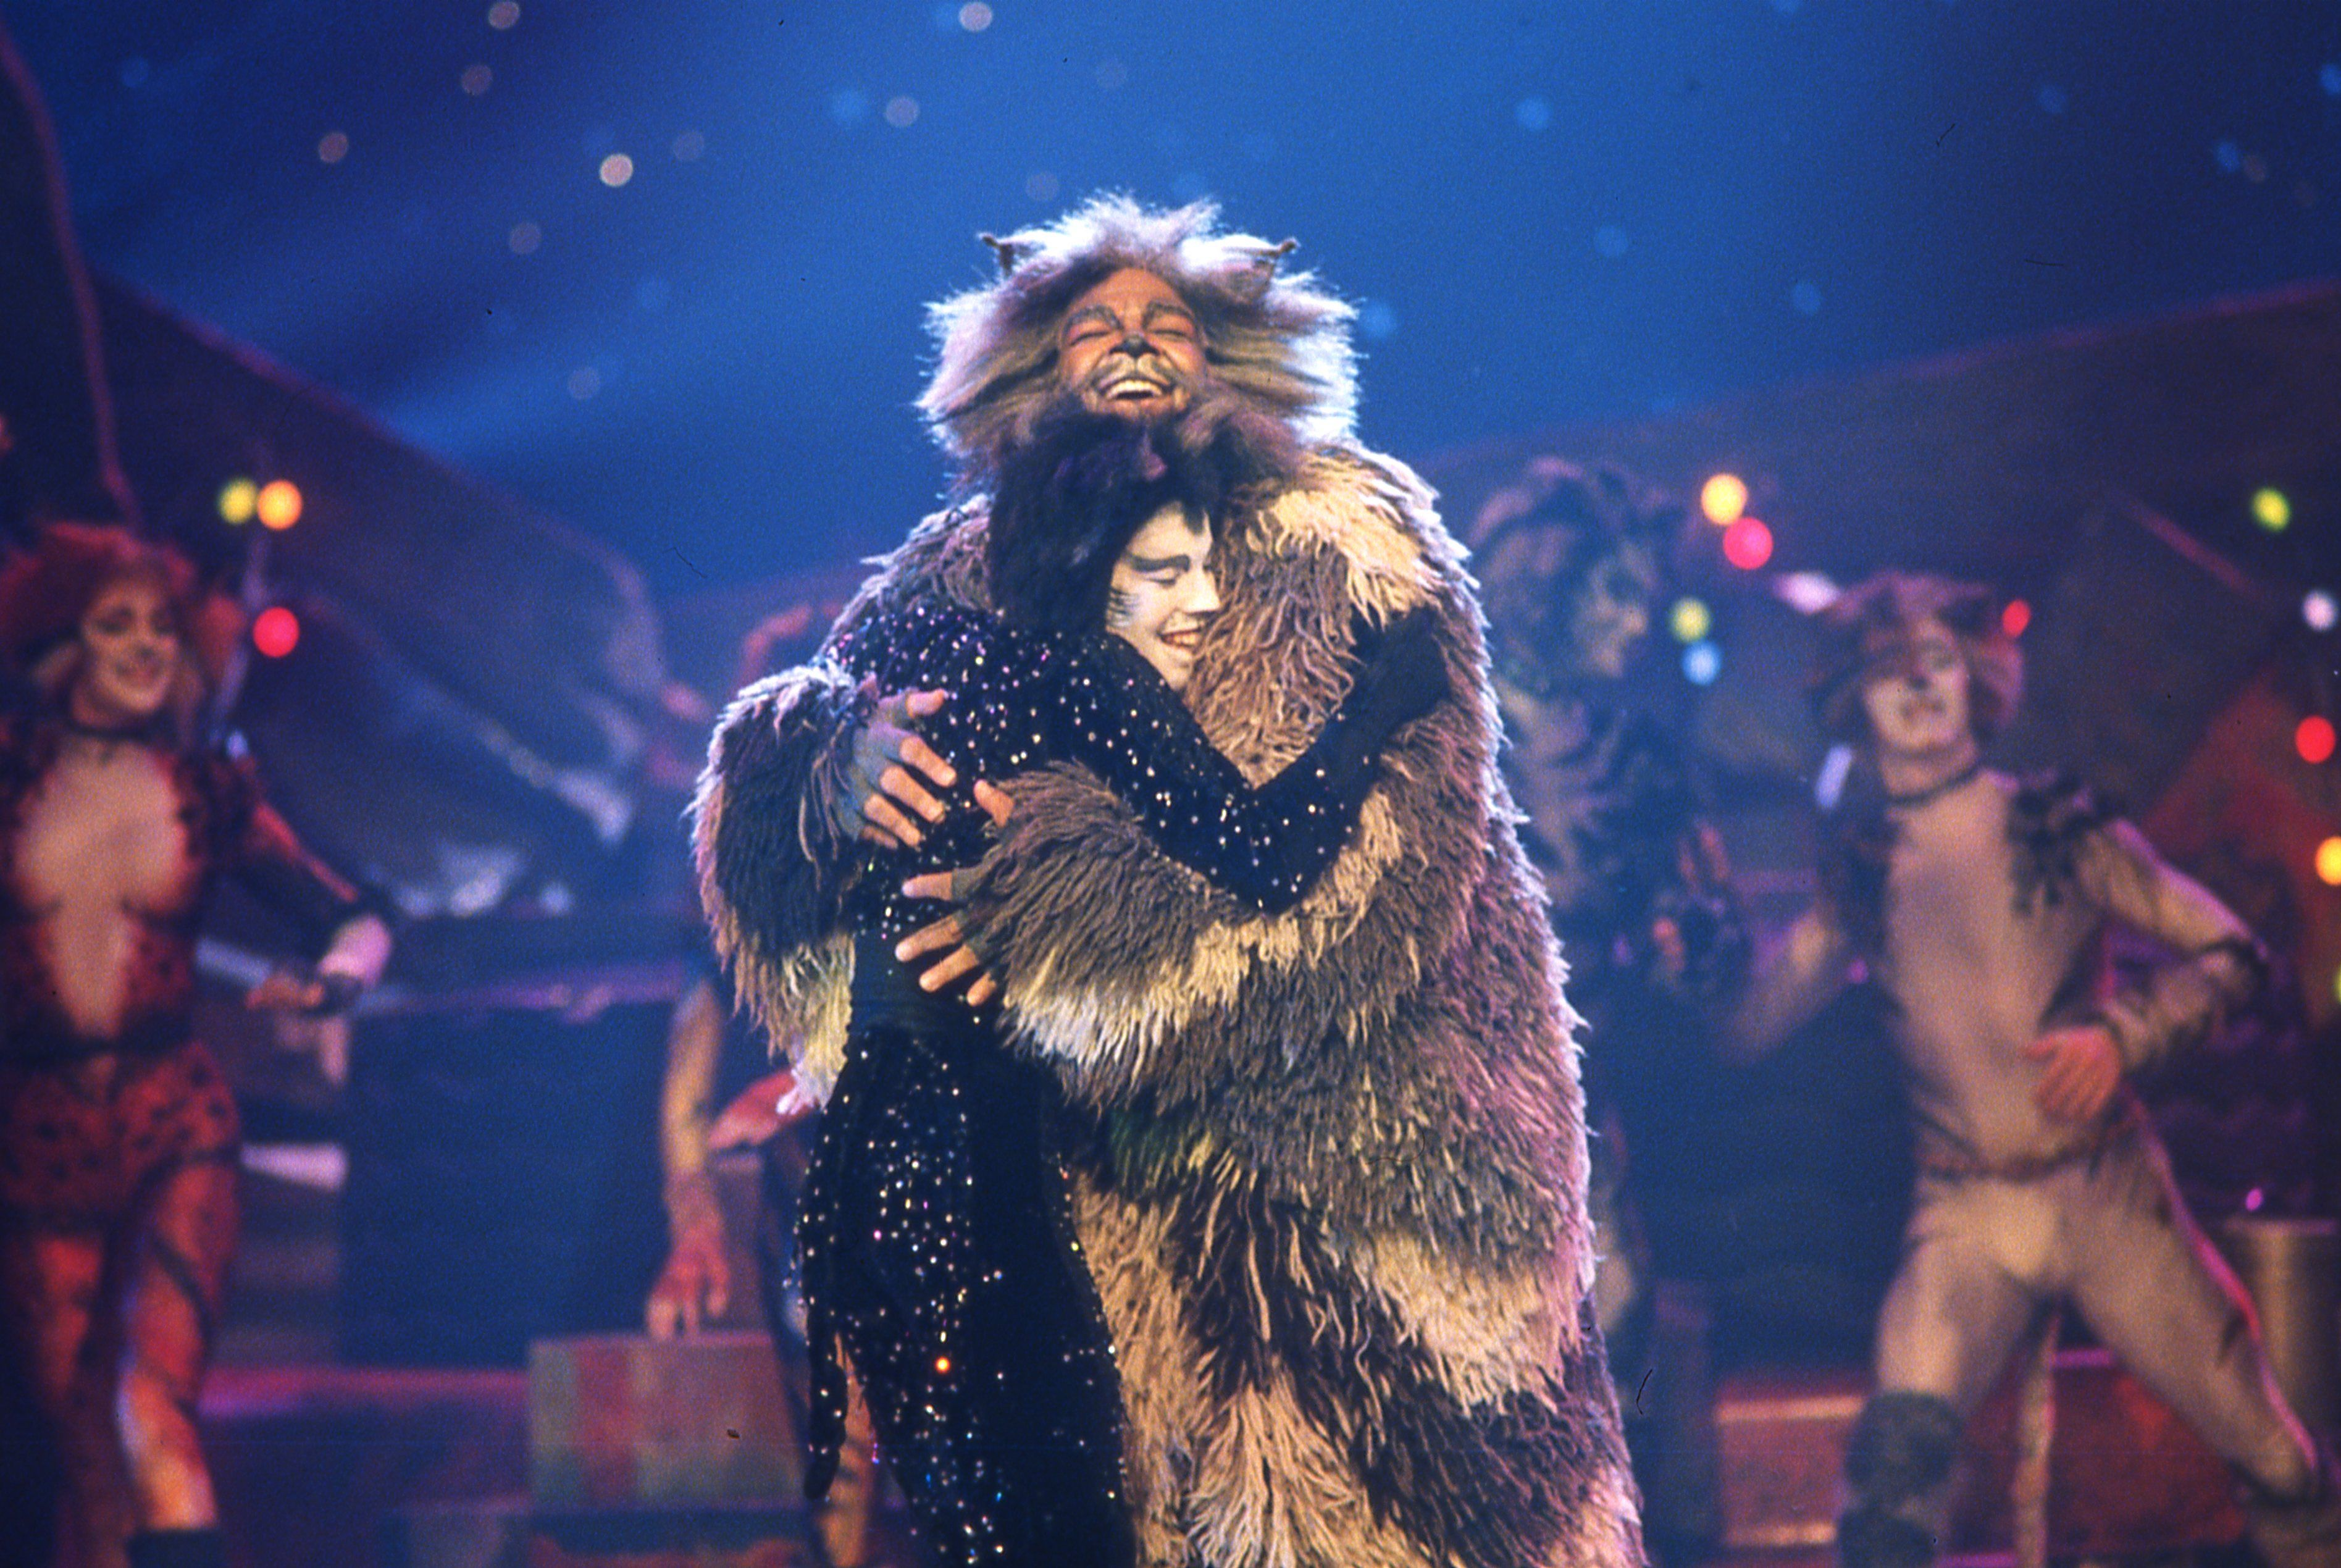 Mr. Mistoffelees & Old Deuteronomy Cats cast, Jellicle cats